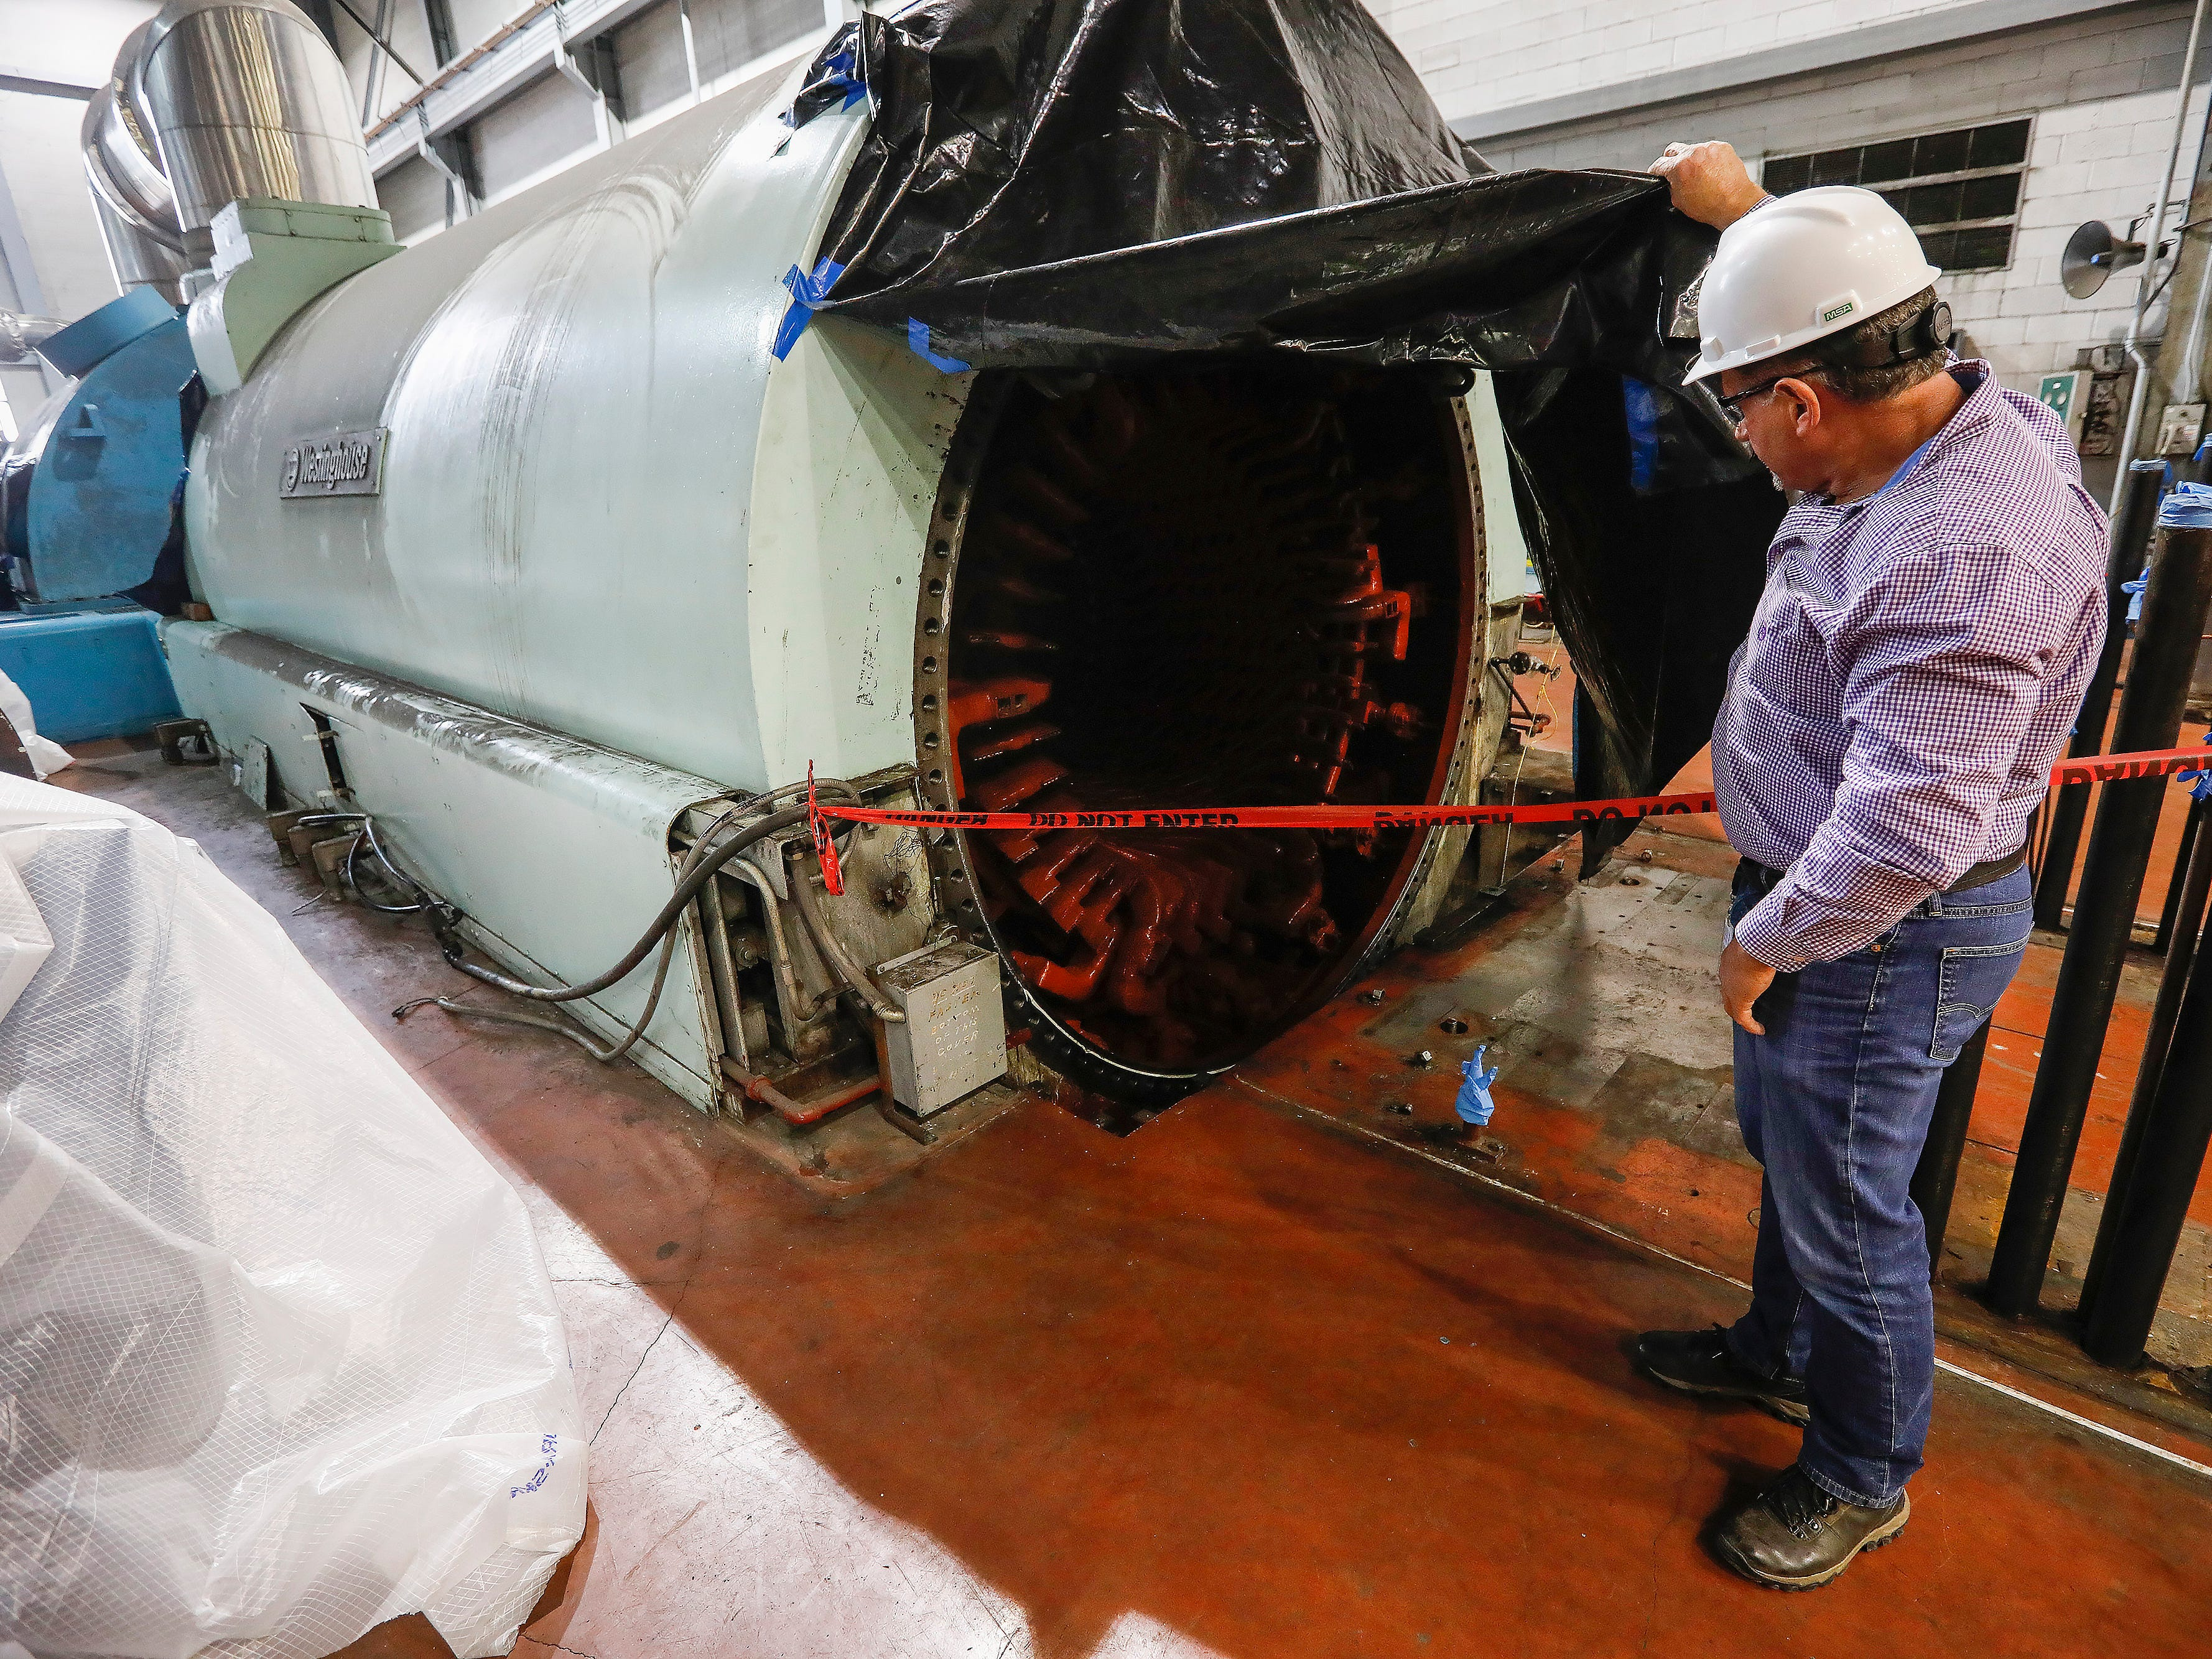 Willy Haffecke, director of power generation at the John Twitty Energy Center, shows where the turbine sits inside the generator.